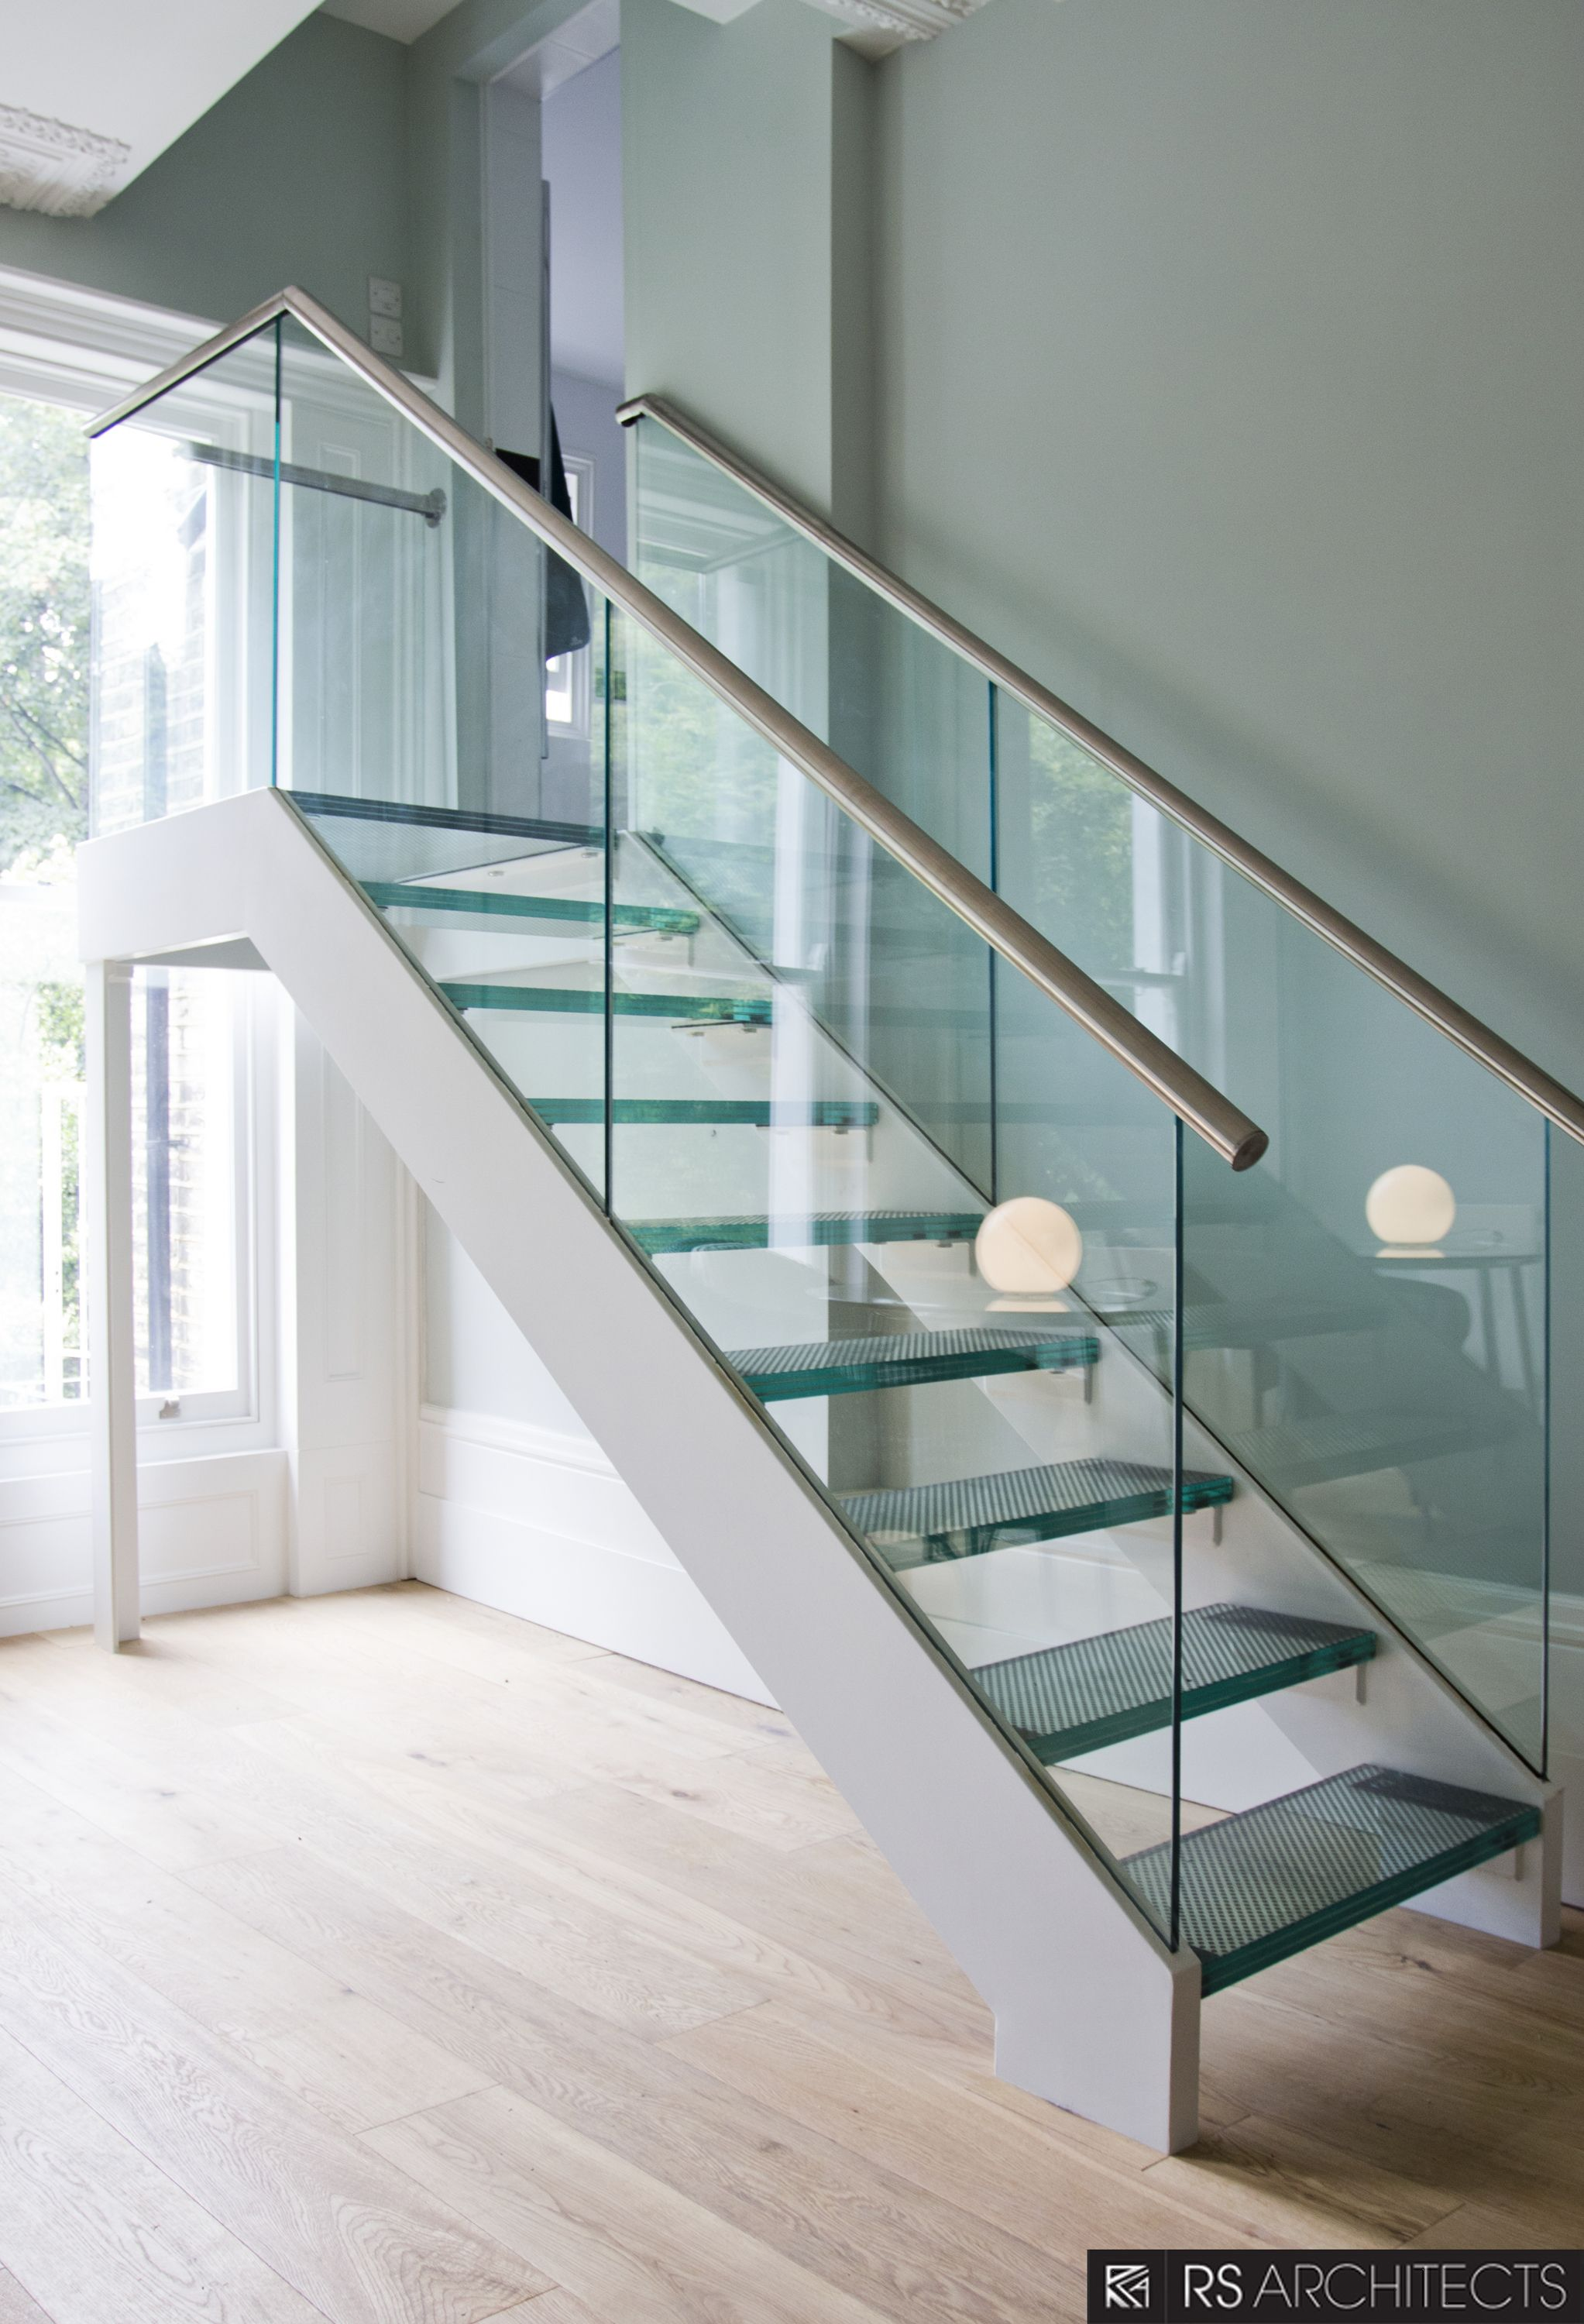 Picturesque Double Chrome Handrail With Glass Balustrade | Steel Railing With Glass For Stairs